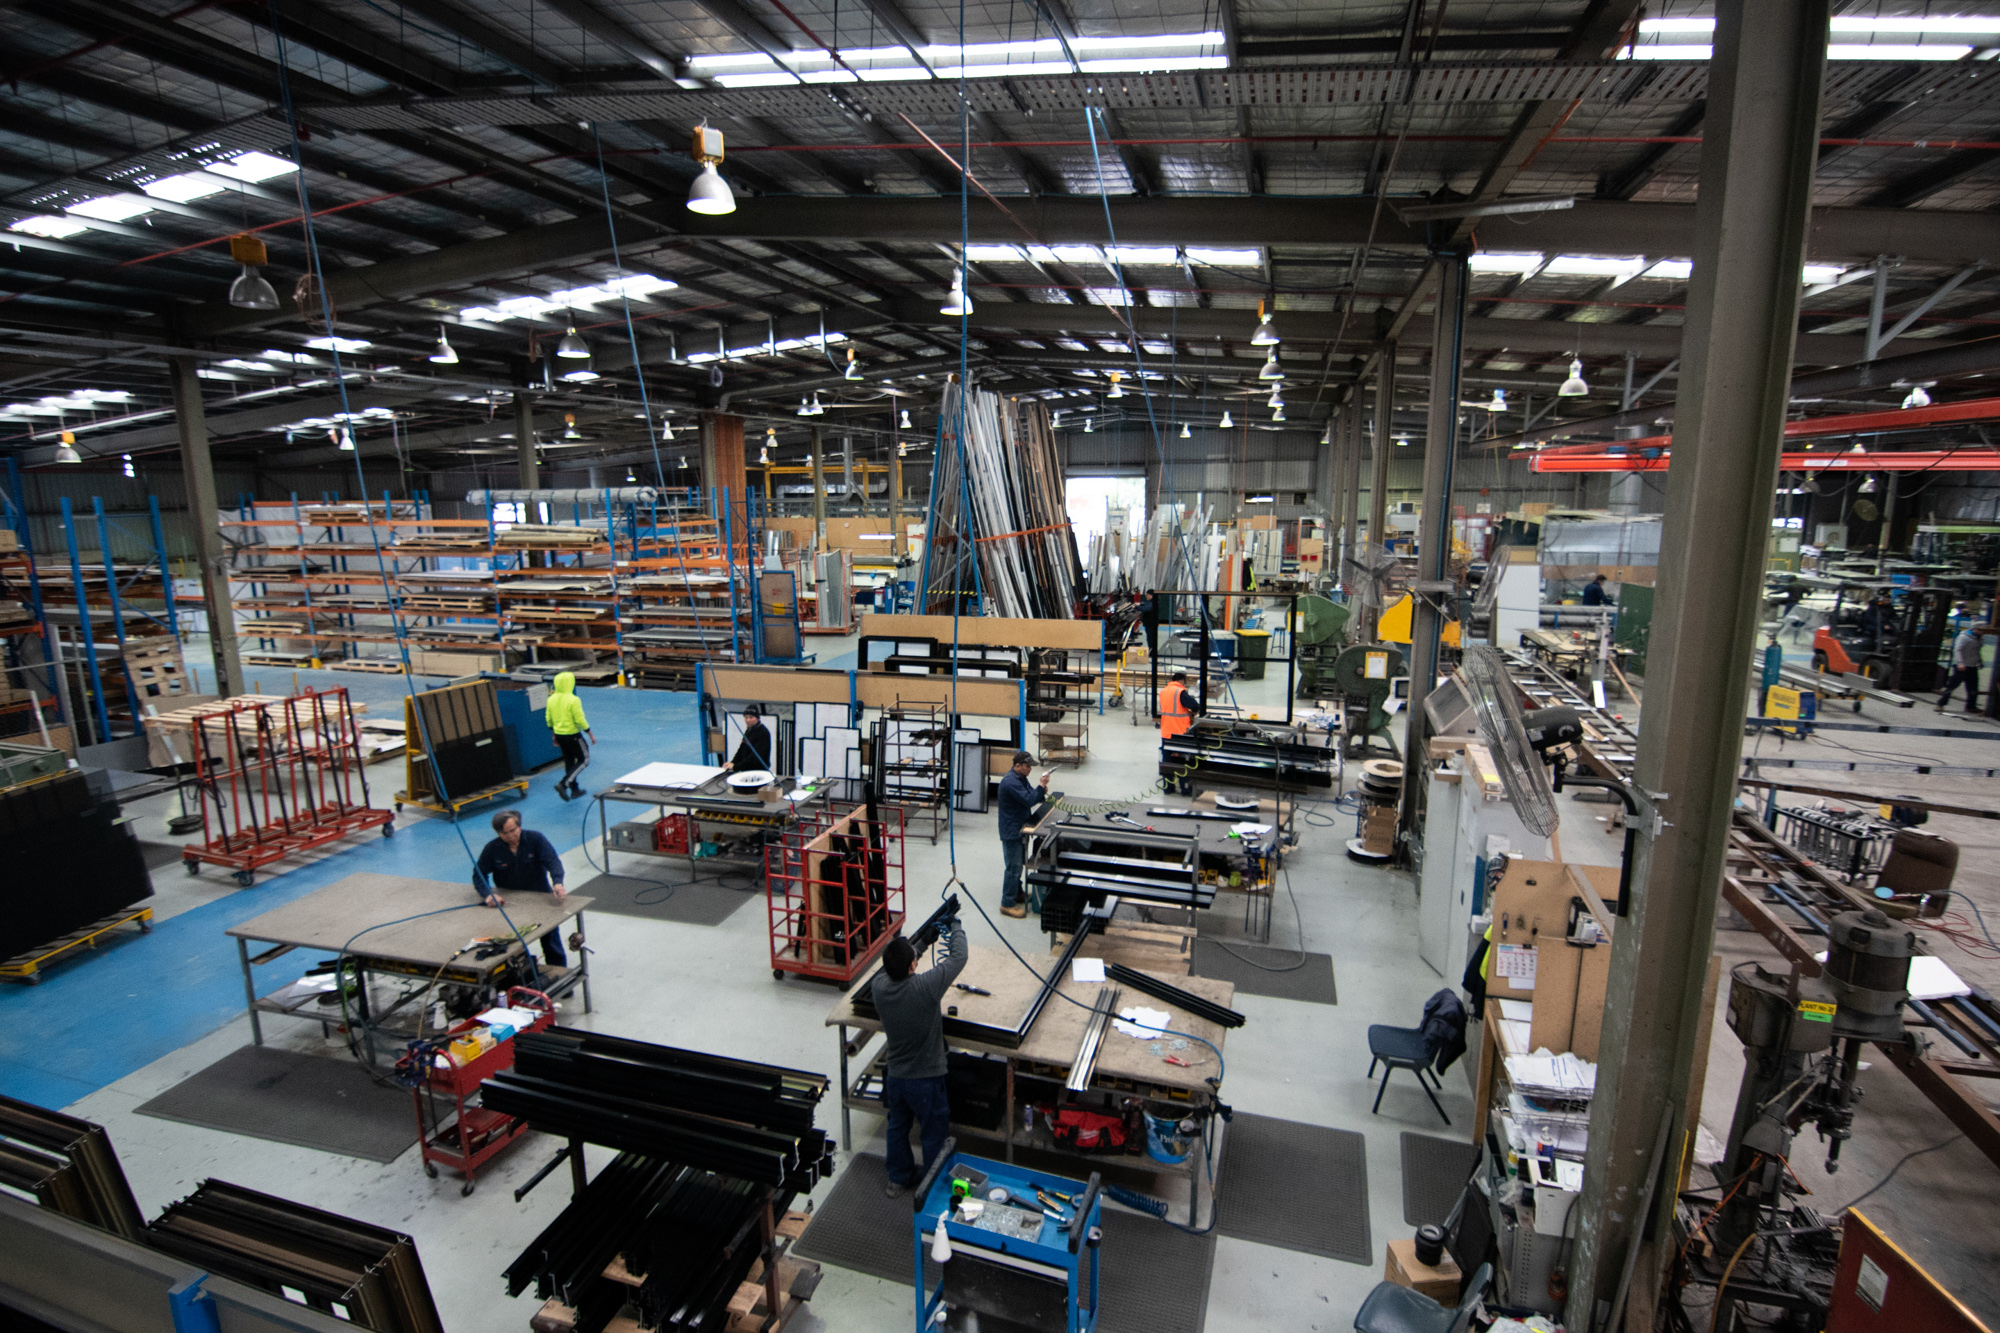 Metal Fabrication Production Factory in Regencu Park South Australia